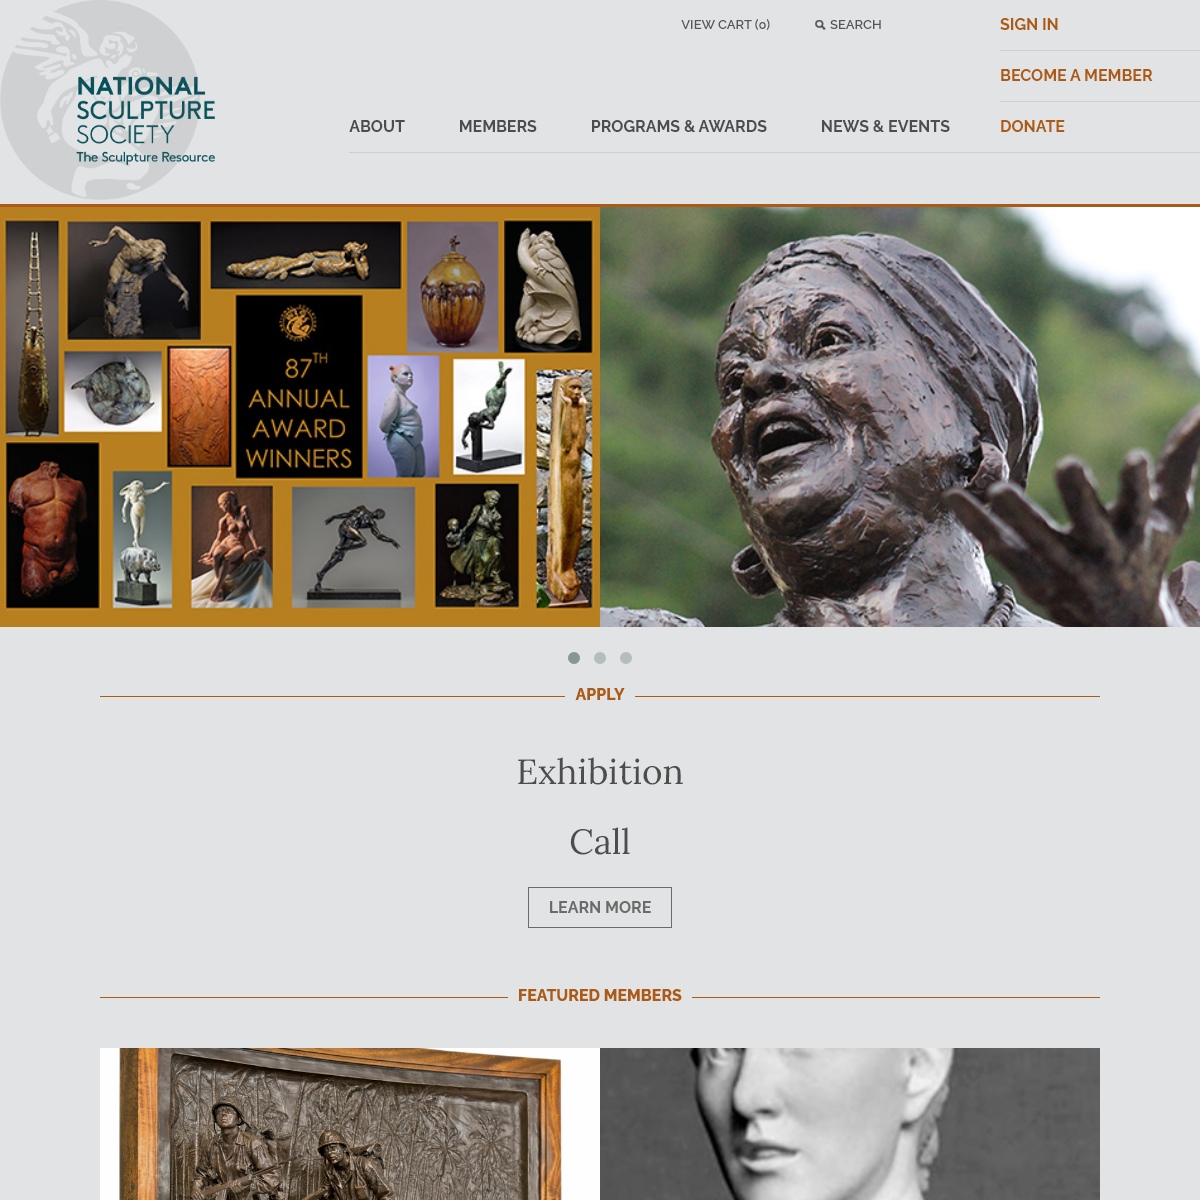 National Sculpture Society - The Sculpture Resource